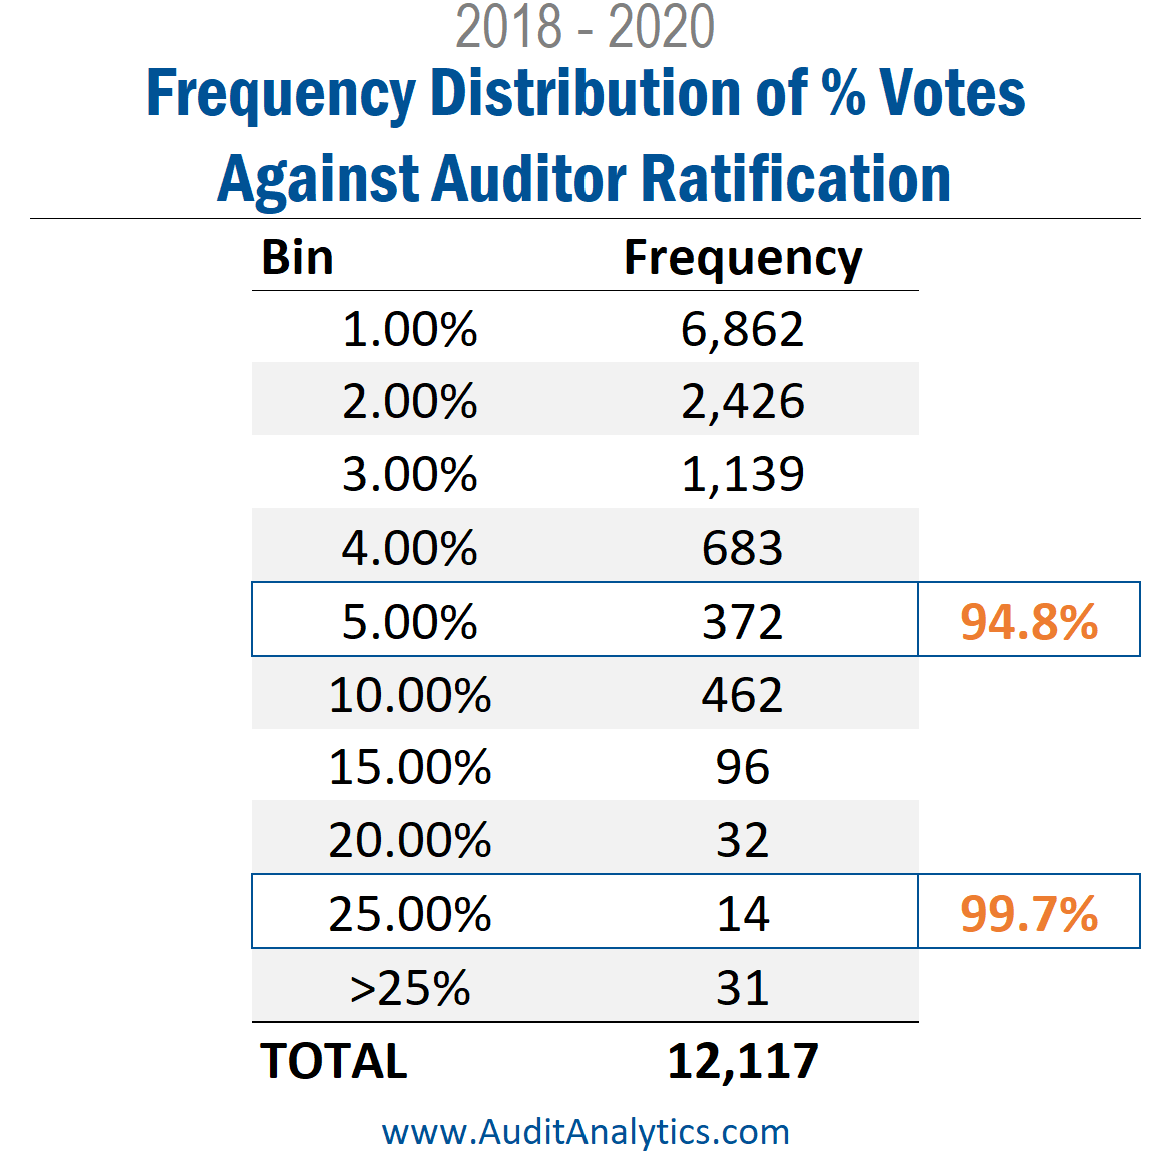 Frequency distribution of % votes against auditor ratification